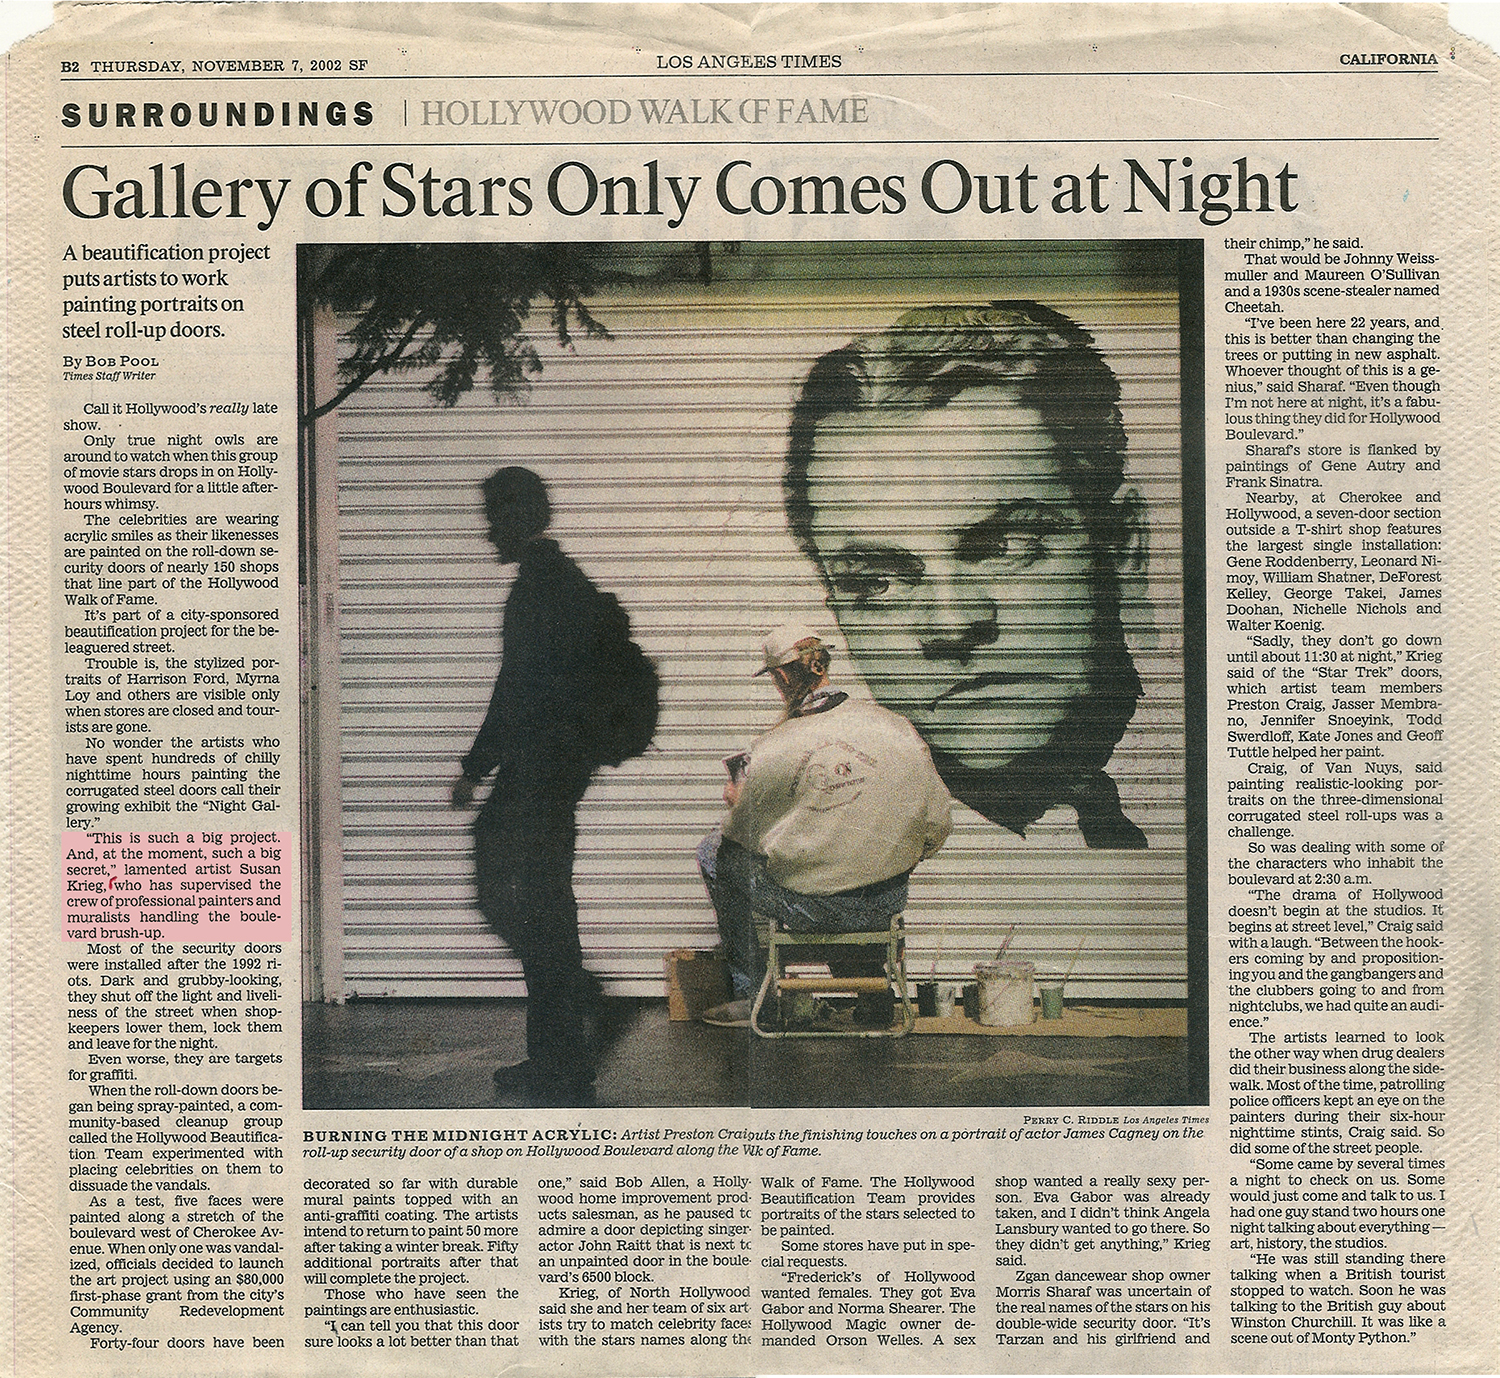 LA Times Article Gallery of Stars Only Comes Out at Night